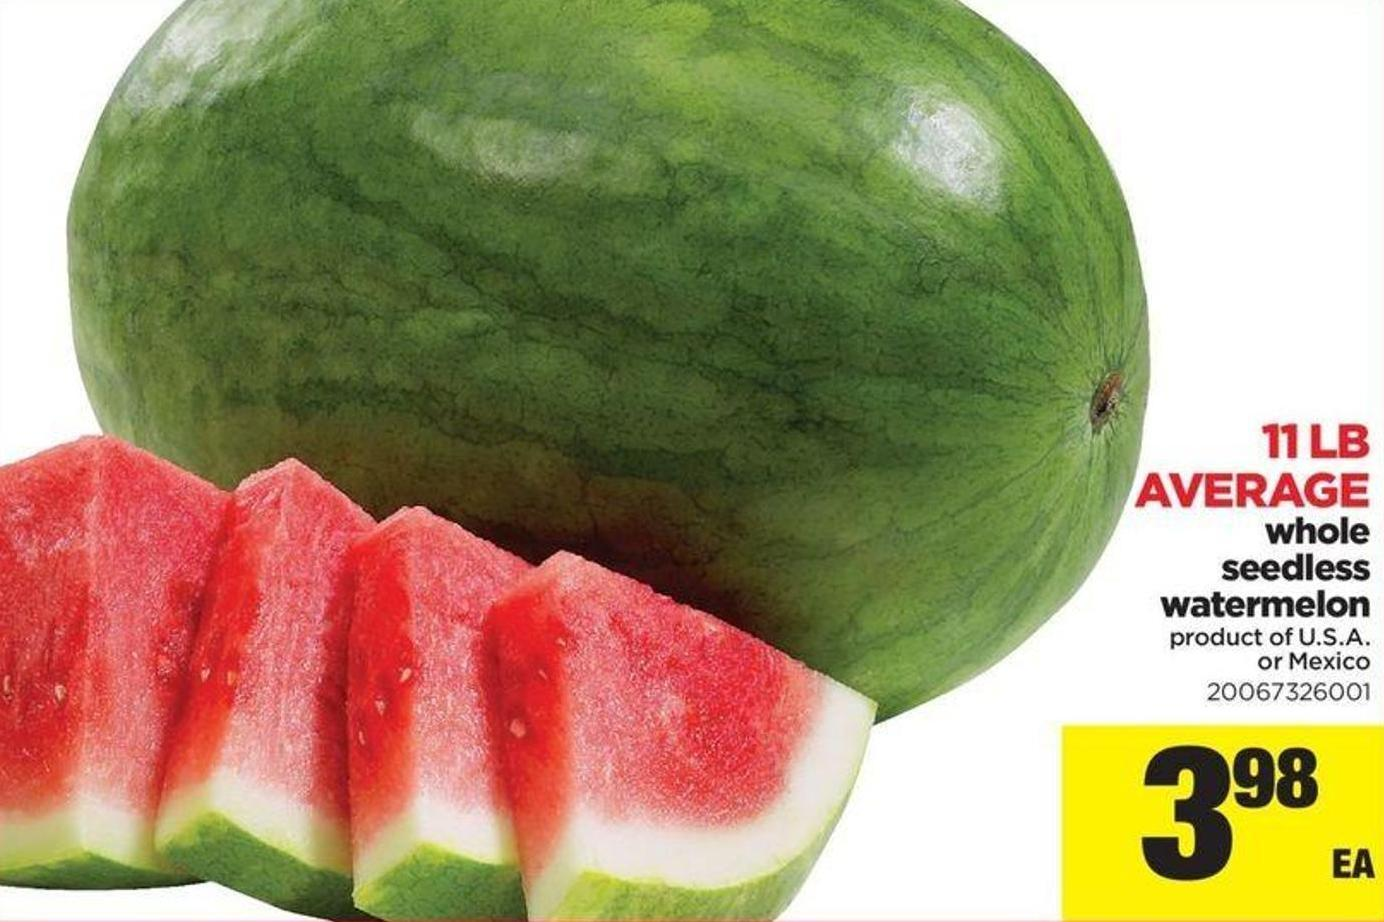 Whole Seedless Watermelon - 11 Lb